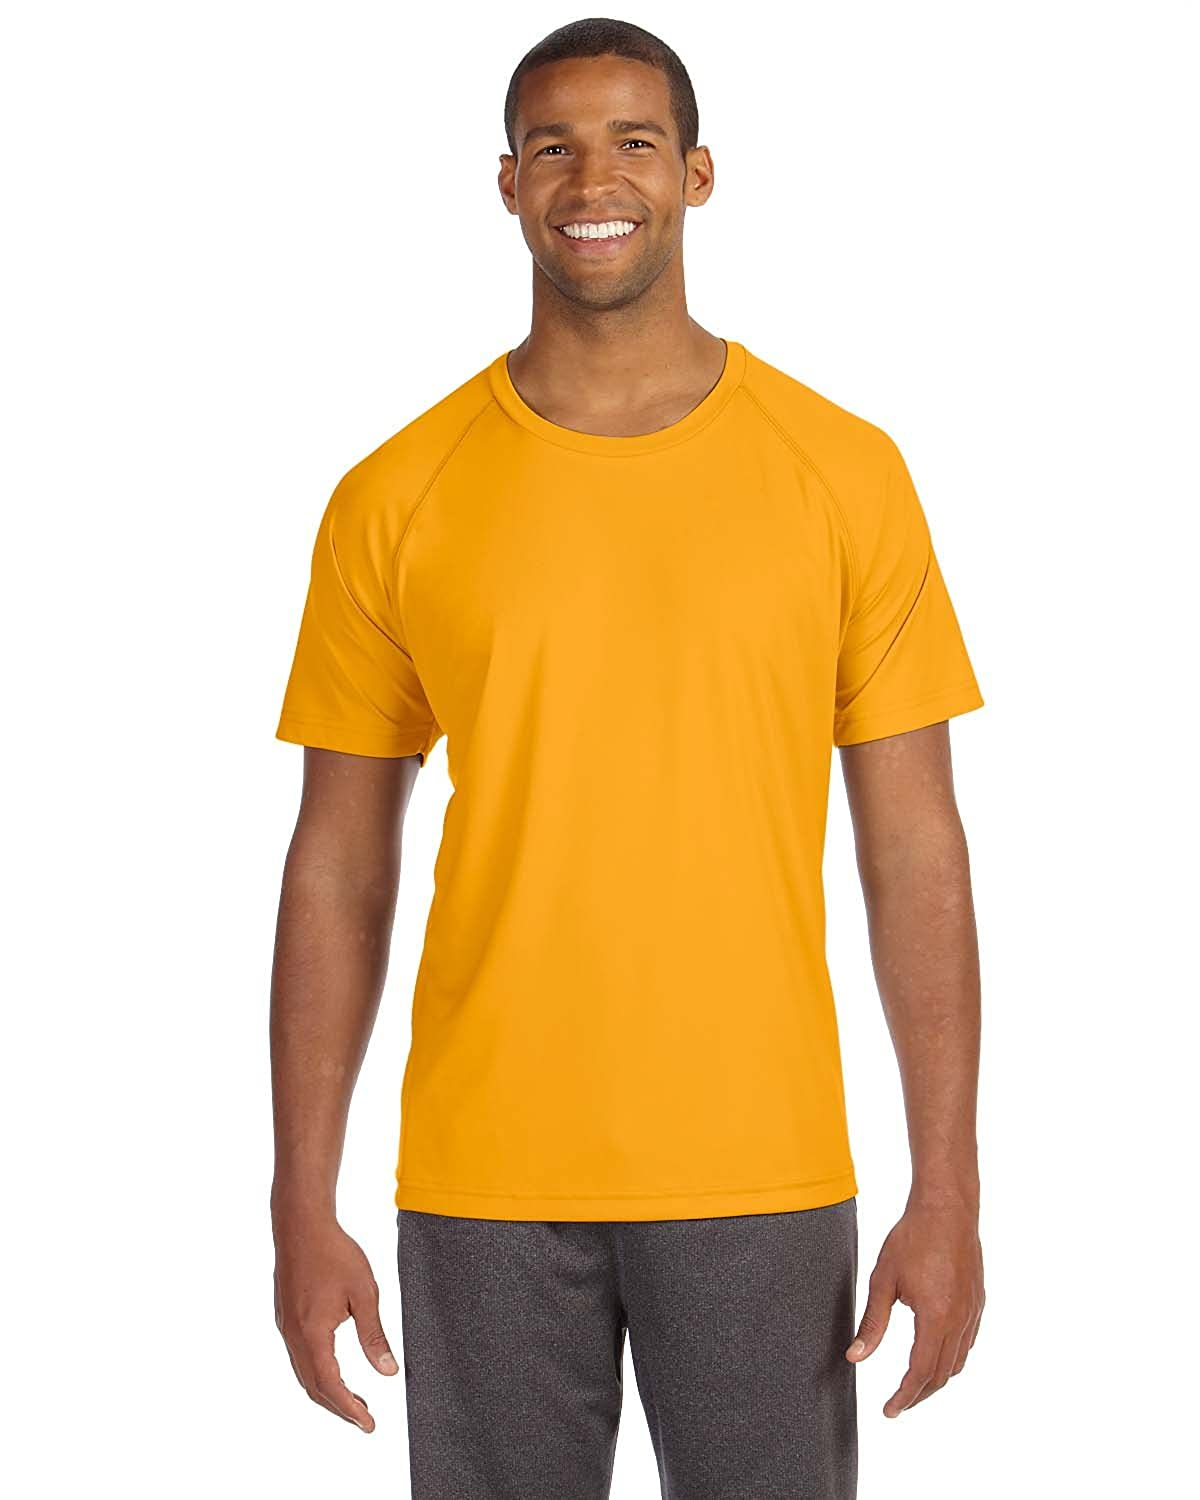 M1029 ALO Sport Performance Short-Sleeve Raglan T-Shirt Athletic Gold 3XL